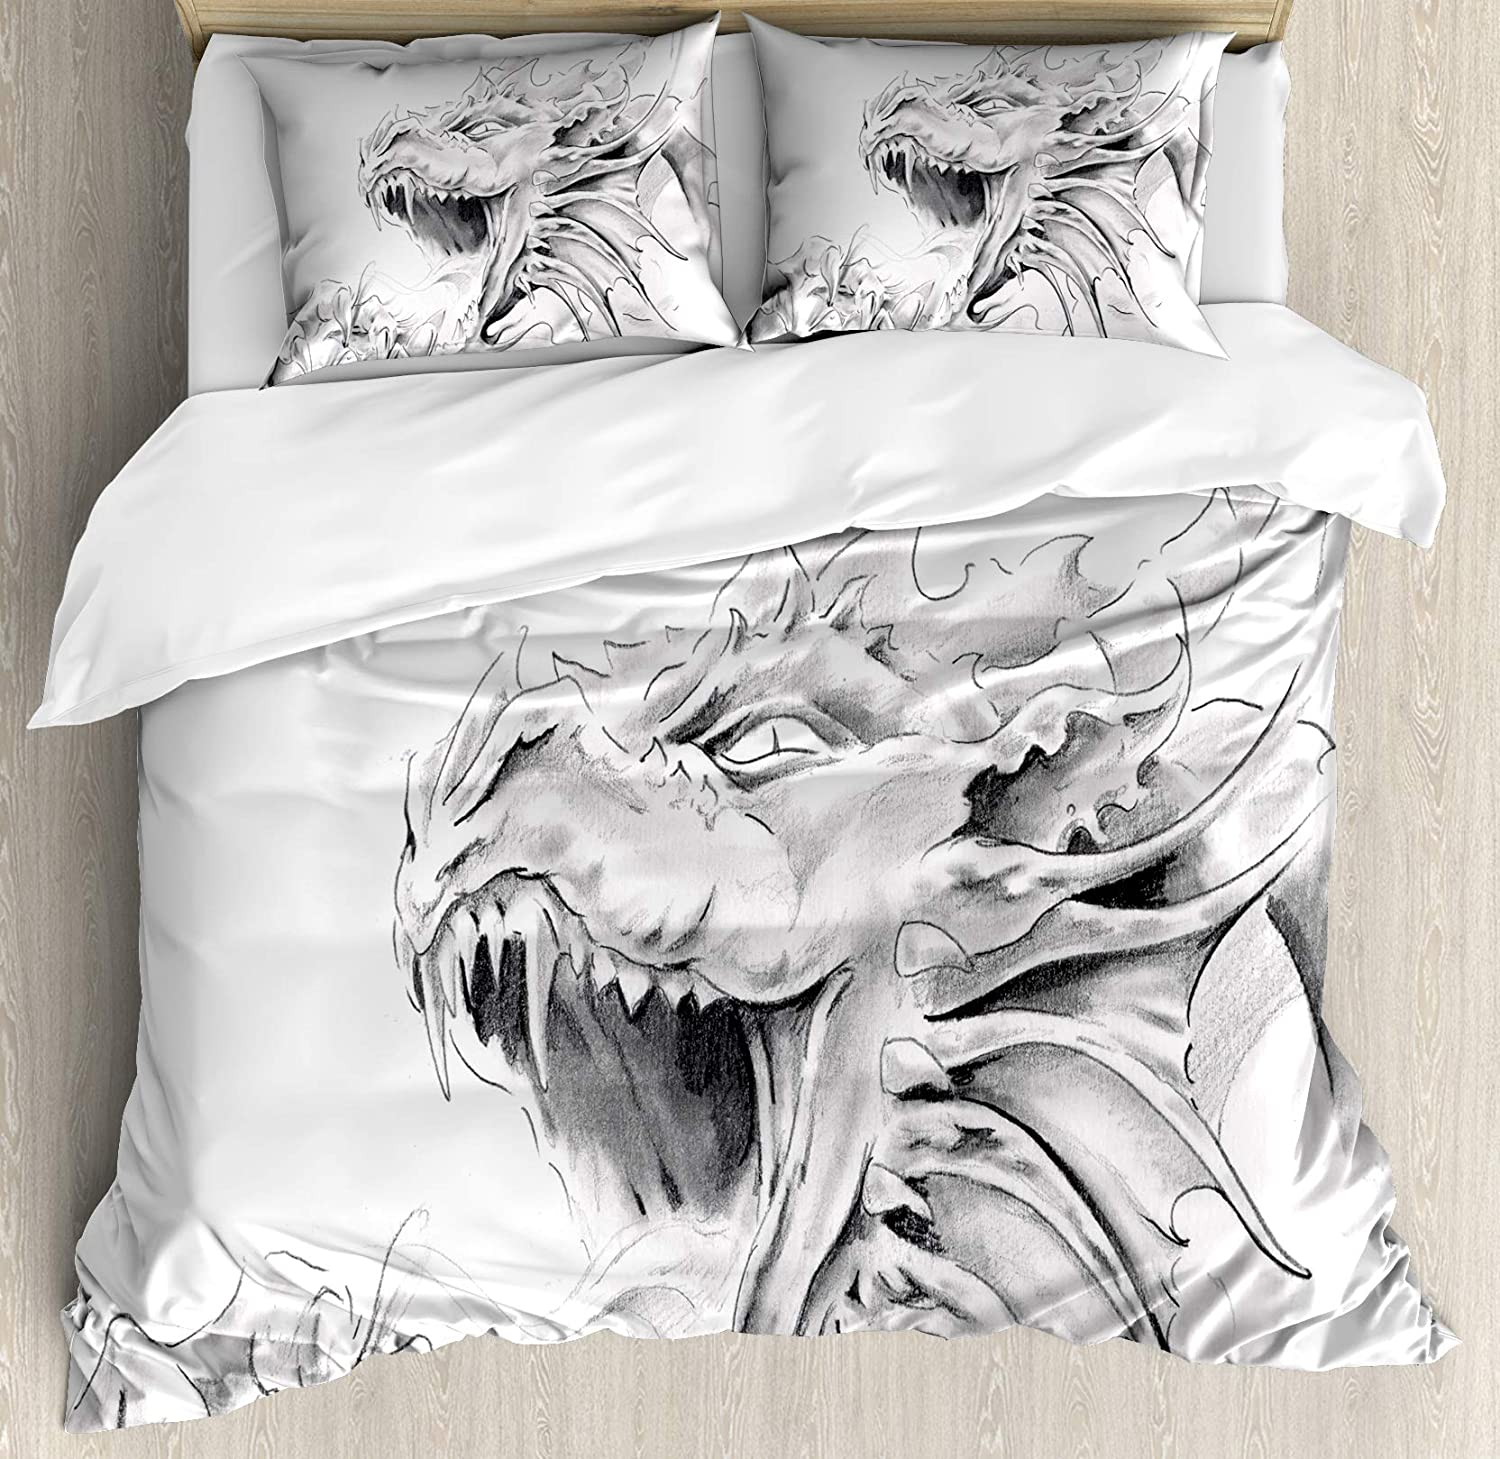 Ambesonne Dragon Duvet Cover Set, Sketch of a Medieval Character Mythological Creature Abstract Design, Decorative 3 Piece Bedding Set with 2 Pillow Shams, King Size, Grey White